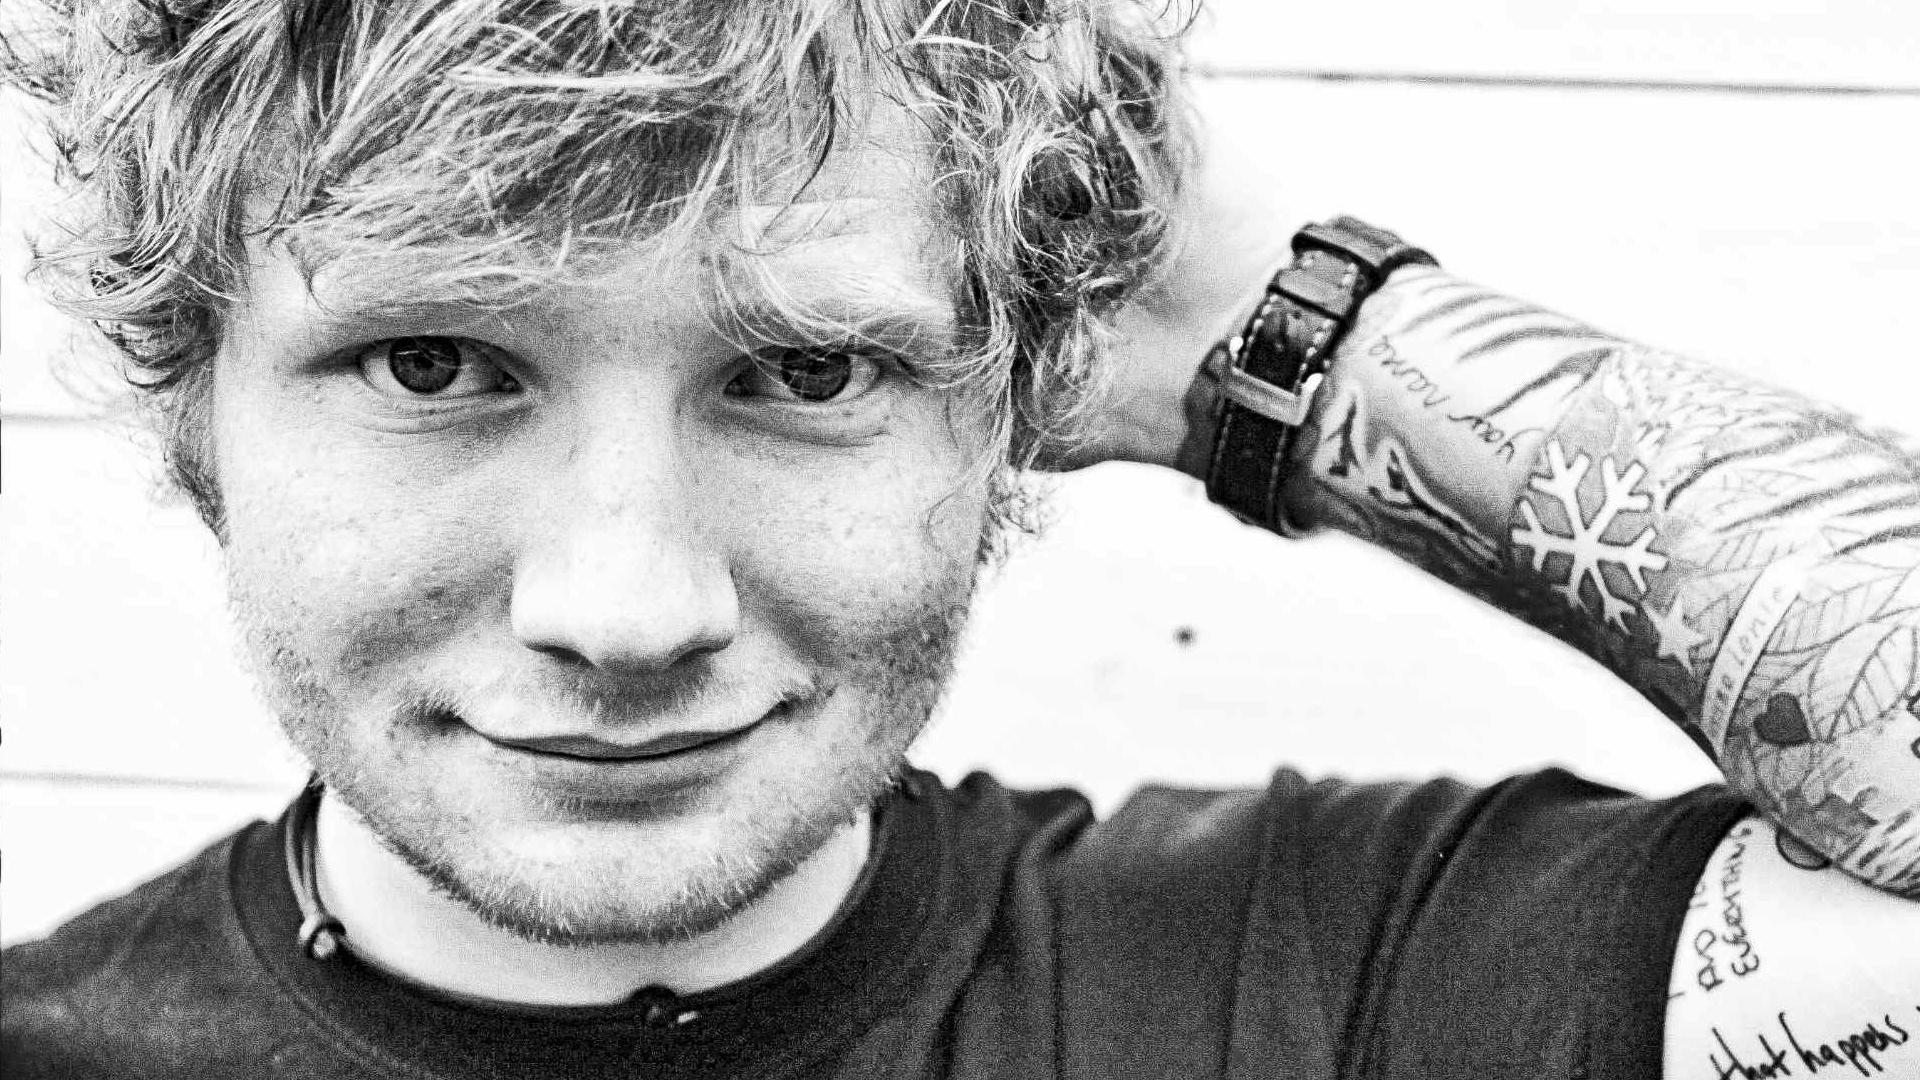 Ed Sheeran Unknown Facts